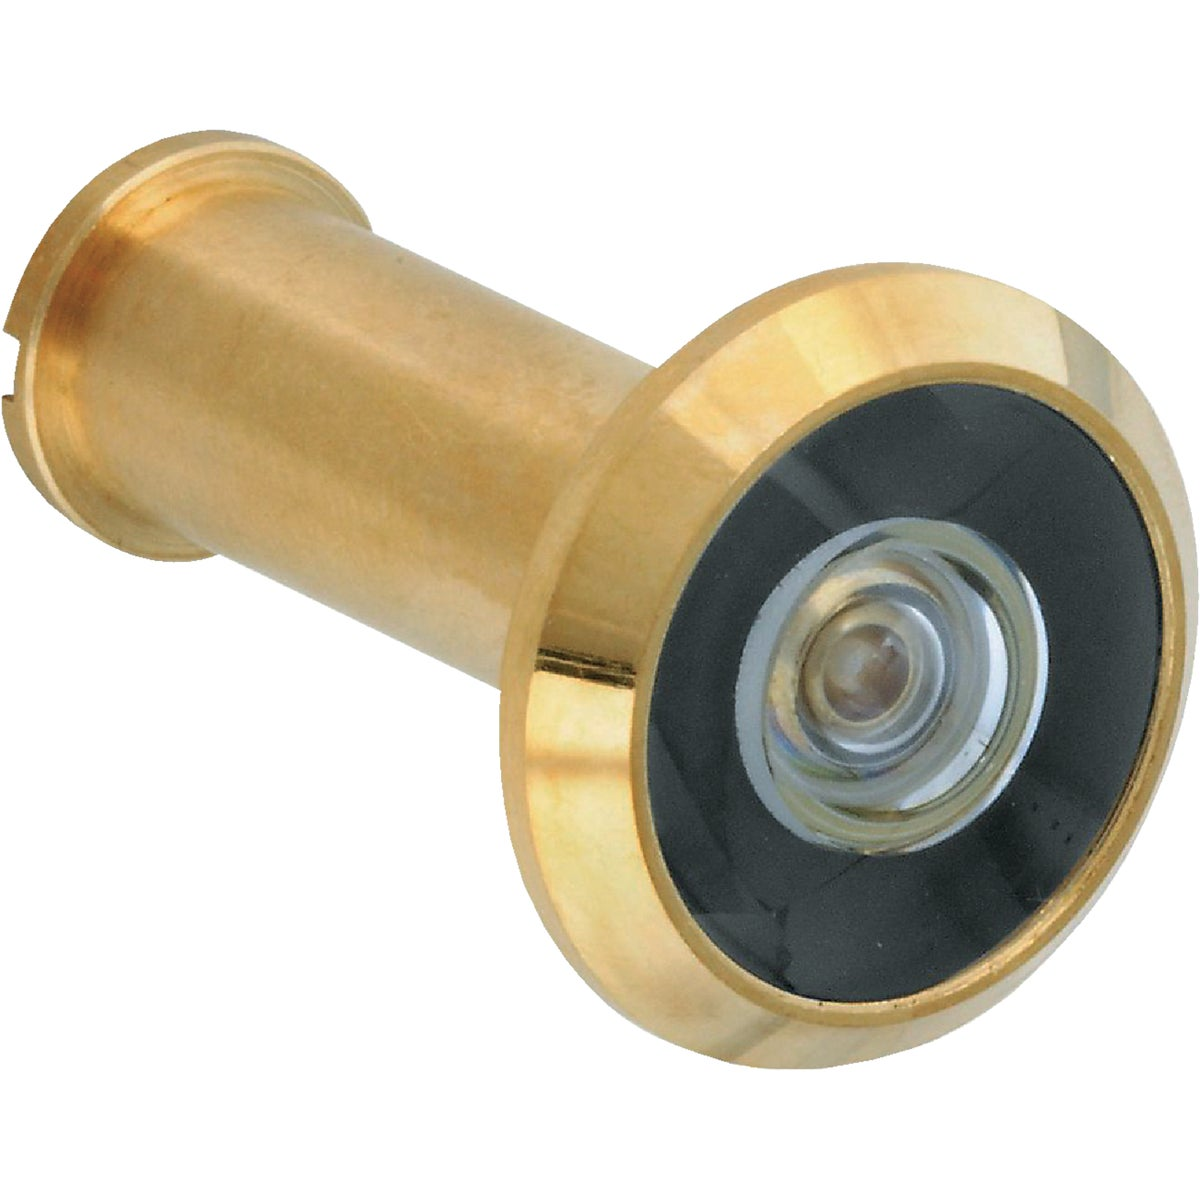 SOLID BRASS DOOR VIEWER - N162362 by National Mfg Co